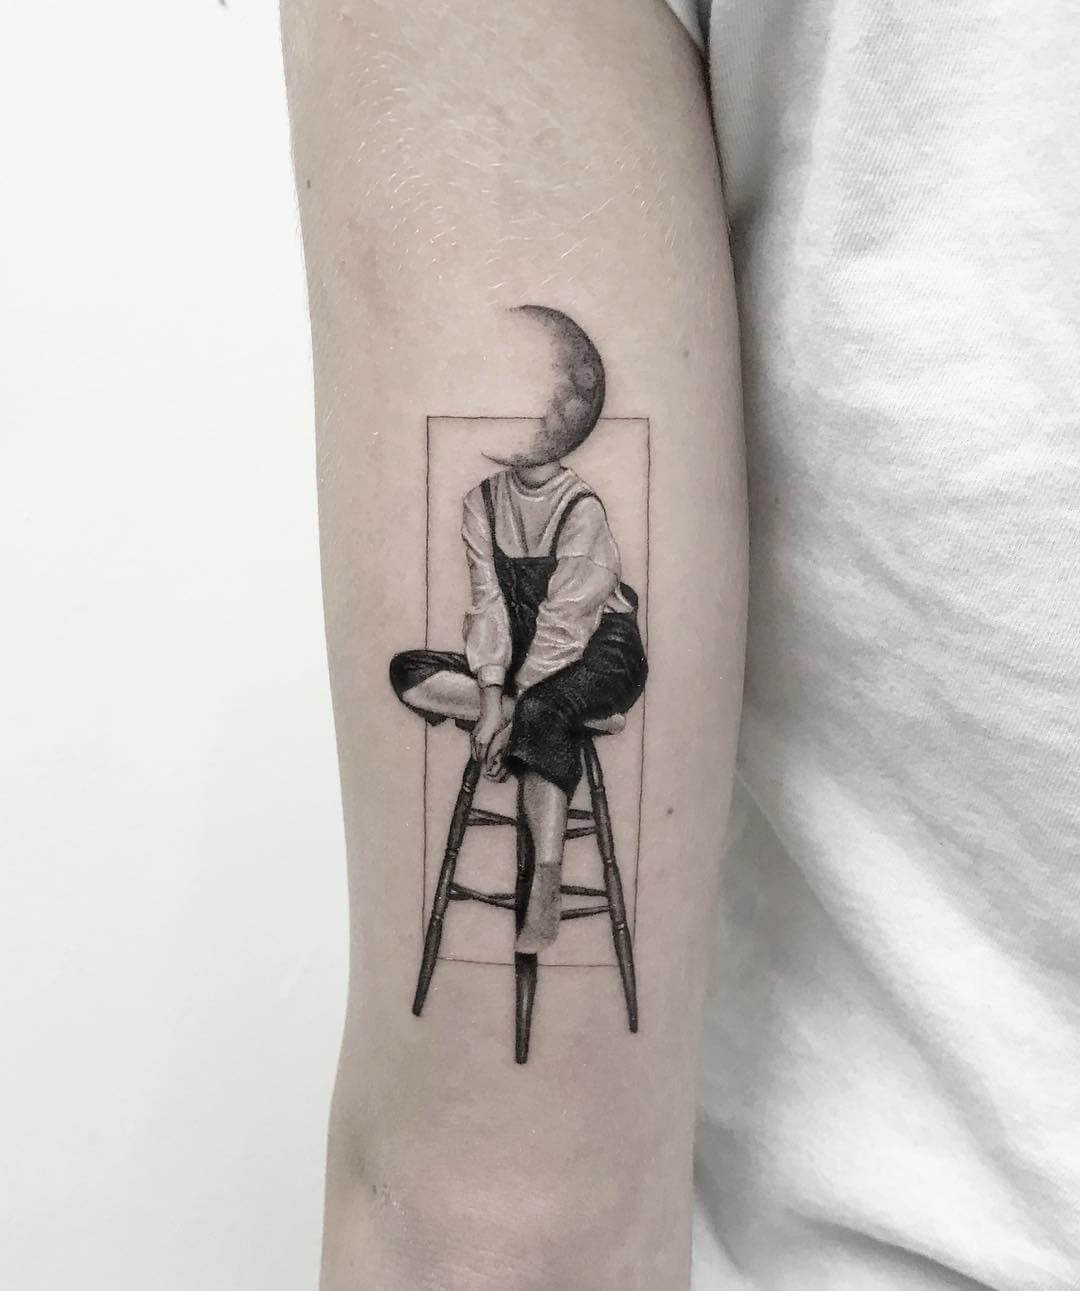 Tattoo sa girl sitting on a bar stool with a moon as head